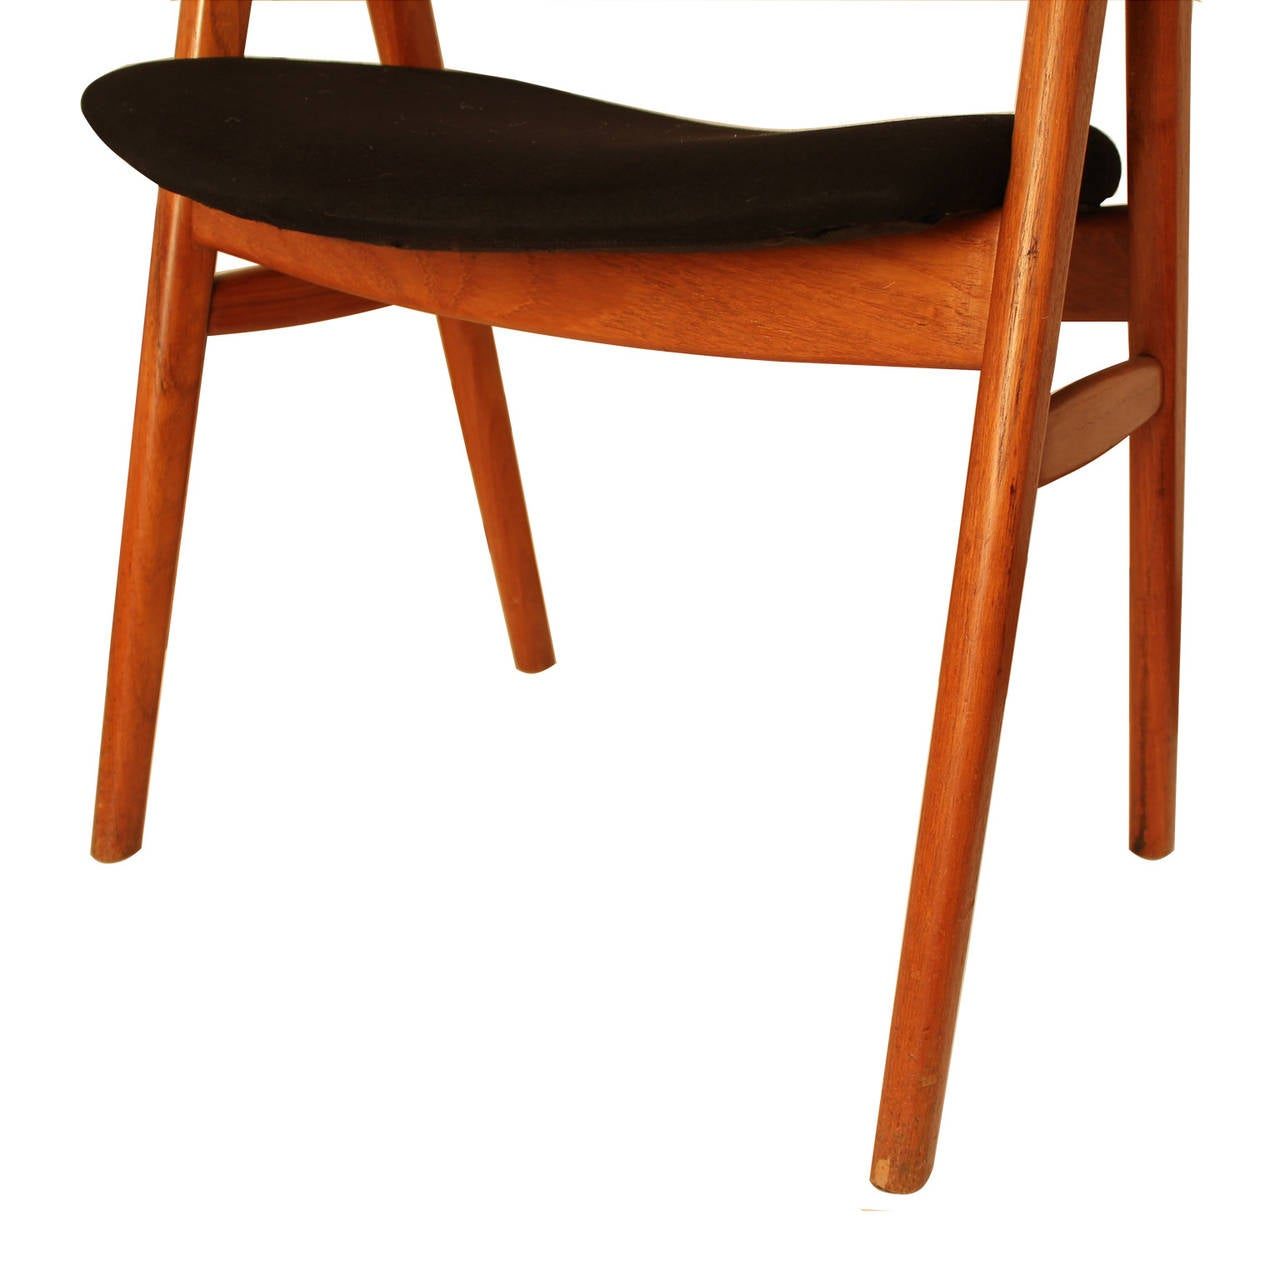 erik kirkegaard teak compass sculpted chair for sale at 1stdibs